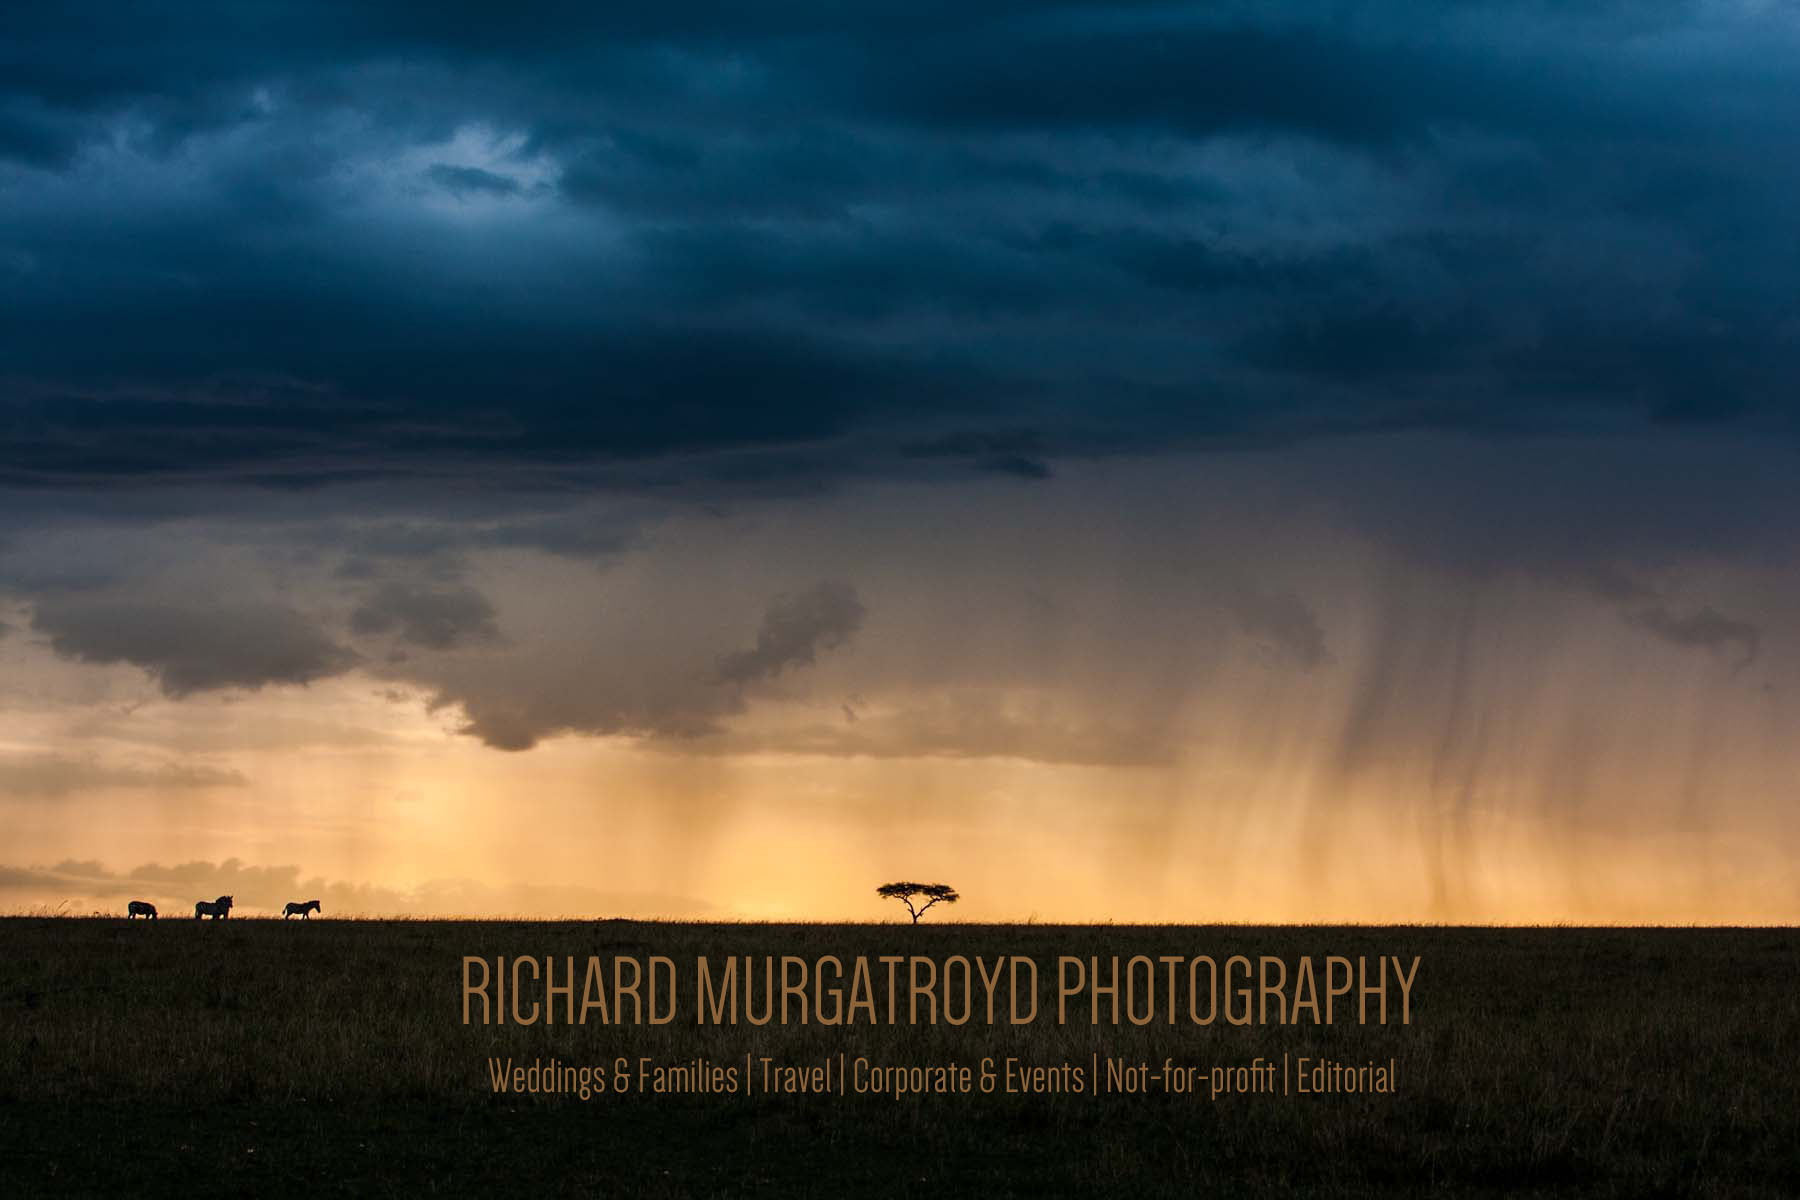 Richard Murgatroyd Documentary Photographer